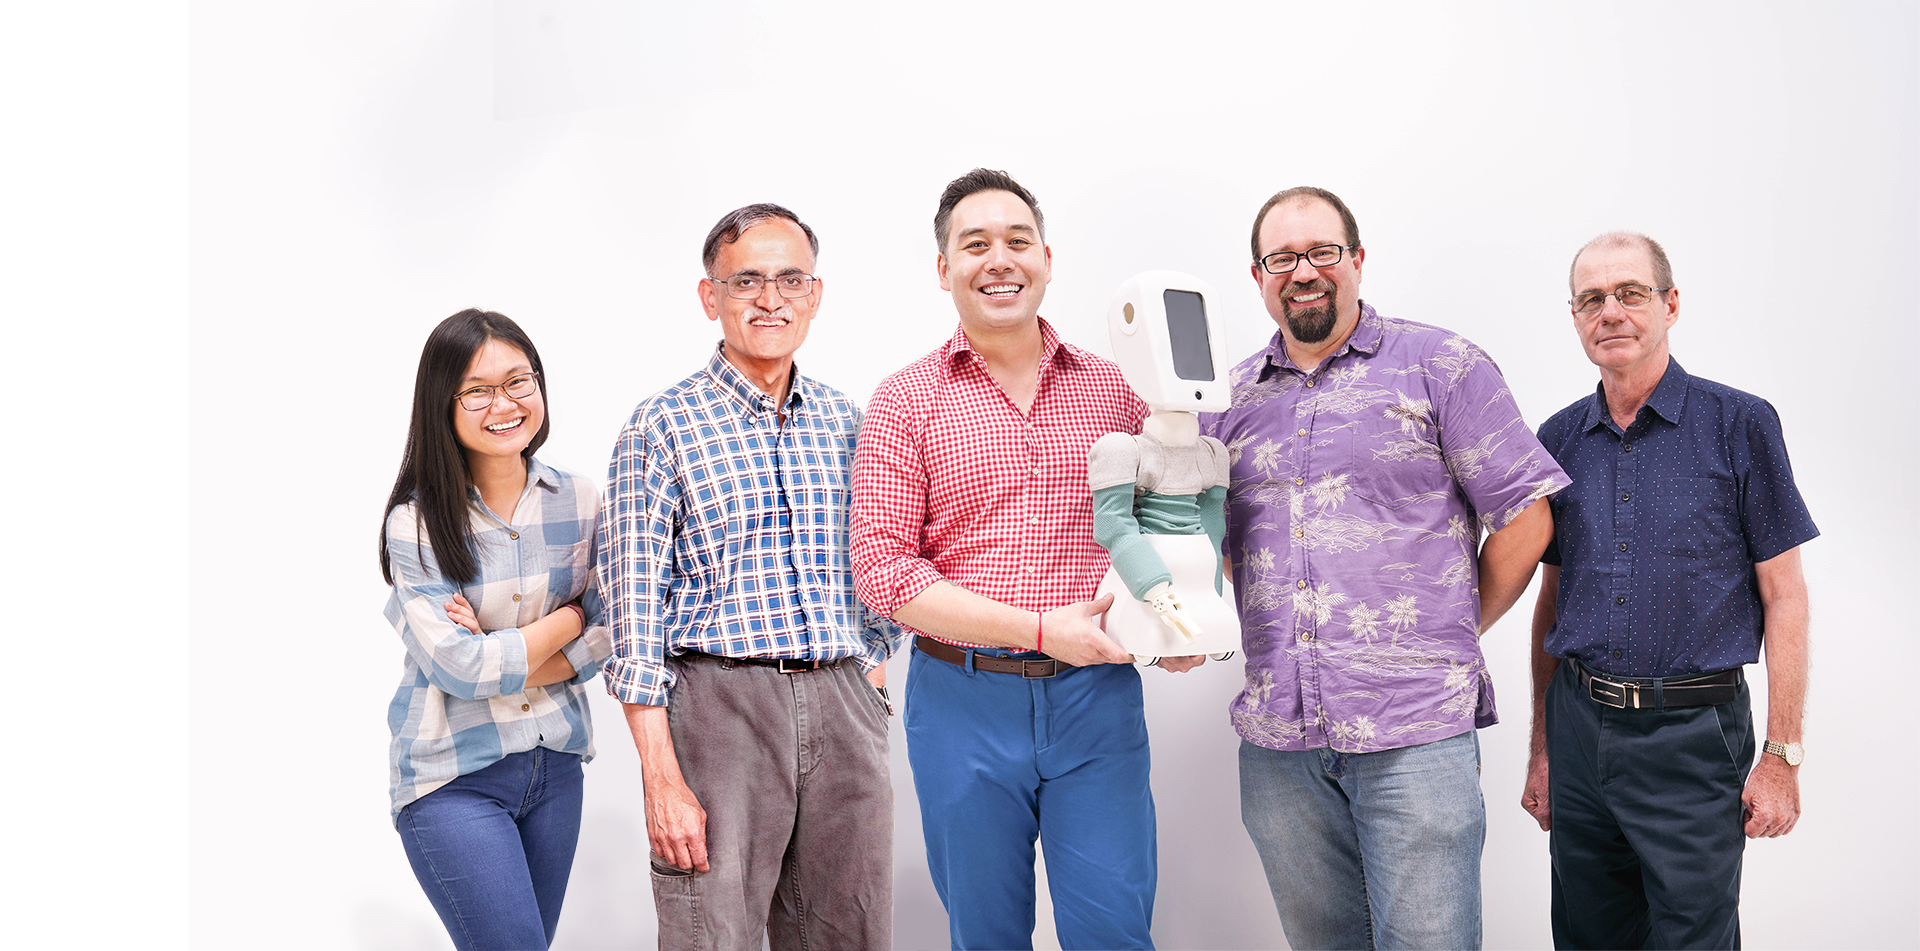 The dream team - Cushybots is a technology startup which was founded by a mechanical engineer, university robotics professor and award winning product designer. This team brings massive technical experience in all aspects of the product engineering and manufacturing process, all grounded in the very personal experiences of distance parenting.